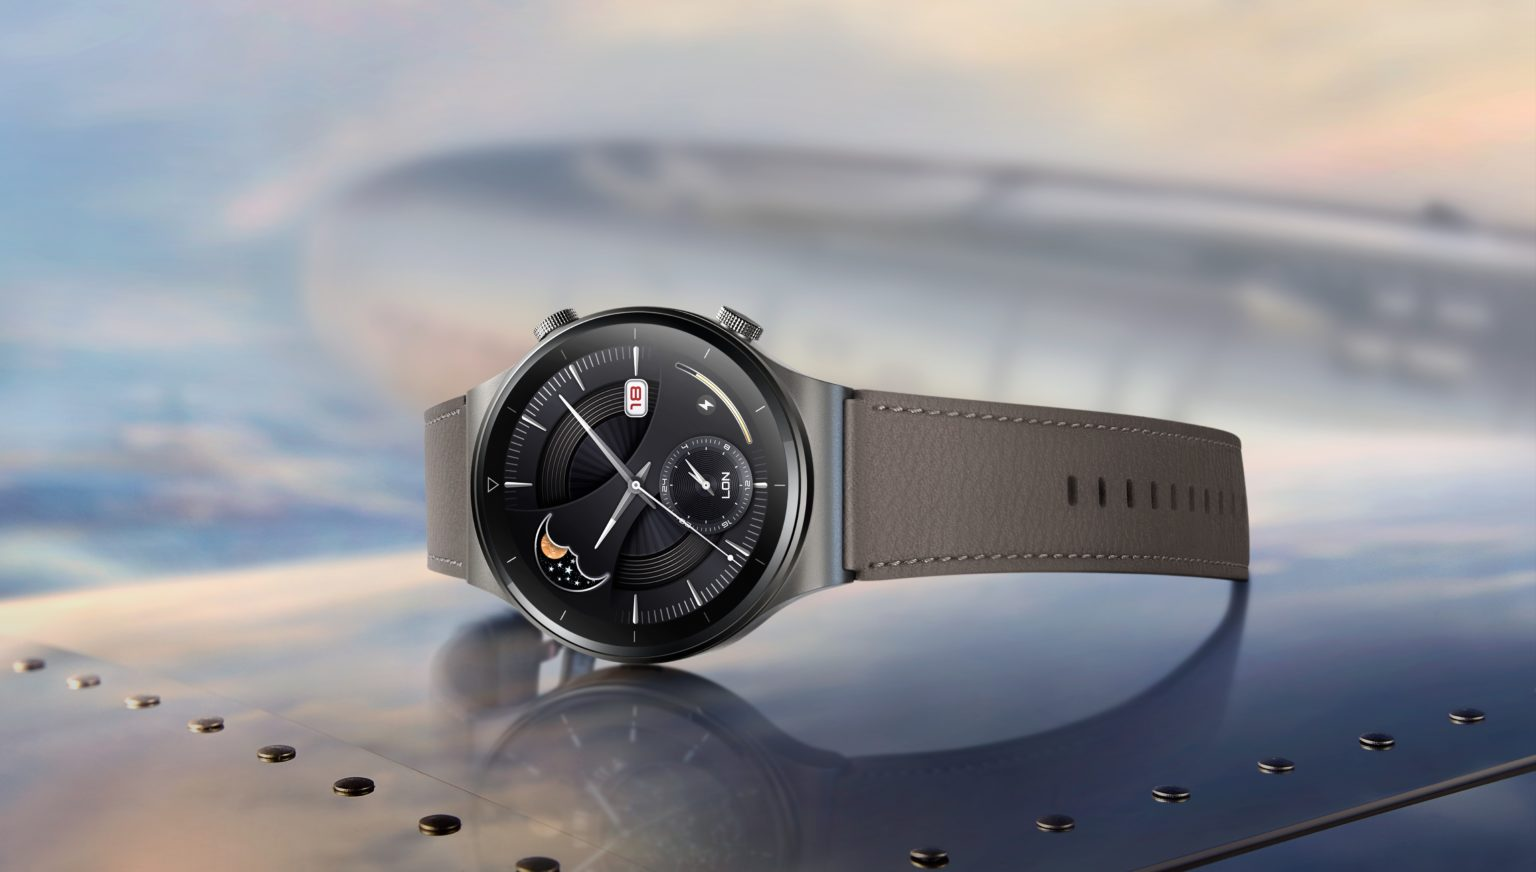 Reloj inteligente Huawei Watch GT 2 Pro